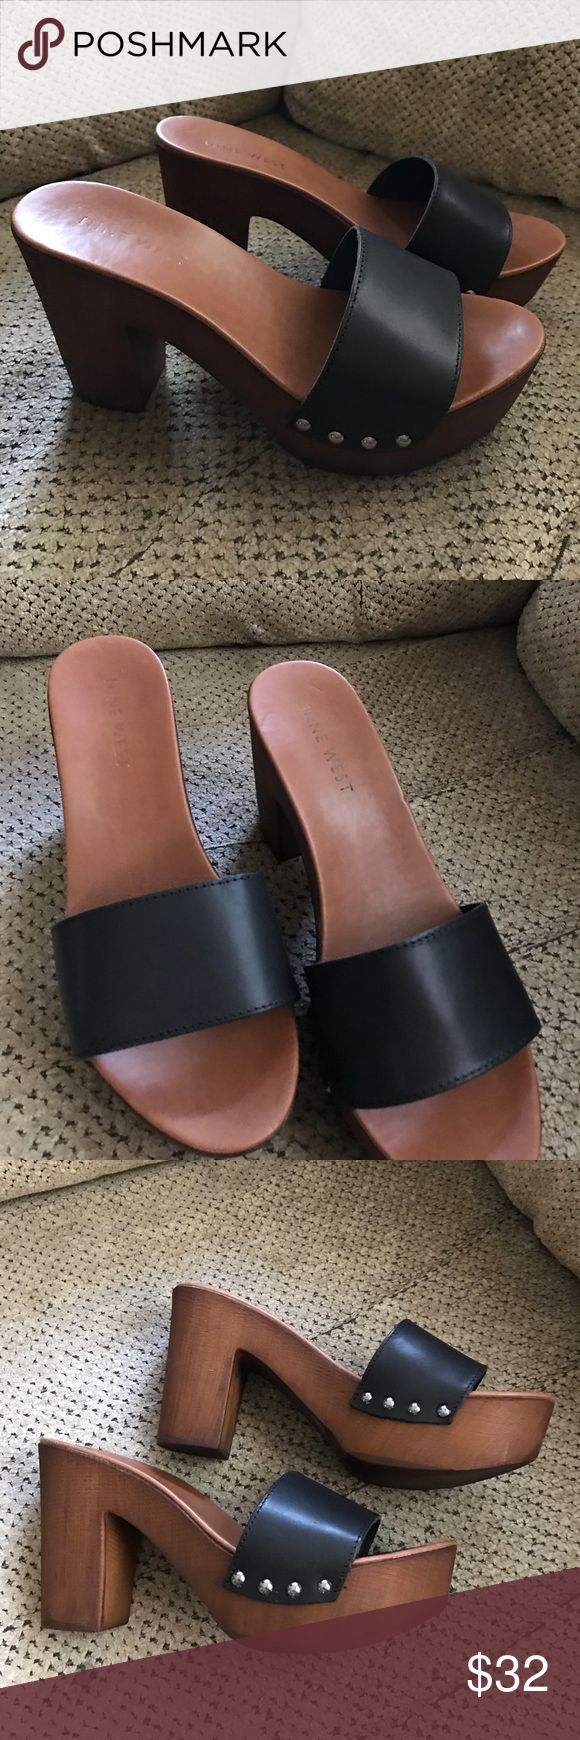 Nine West Platform Mules/Clogs Never worn only tried on; Nine West Platform Mules/Clogs with thick black strap and buttons on sides Nine West Shoes Mules & Clogs